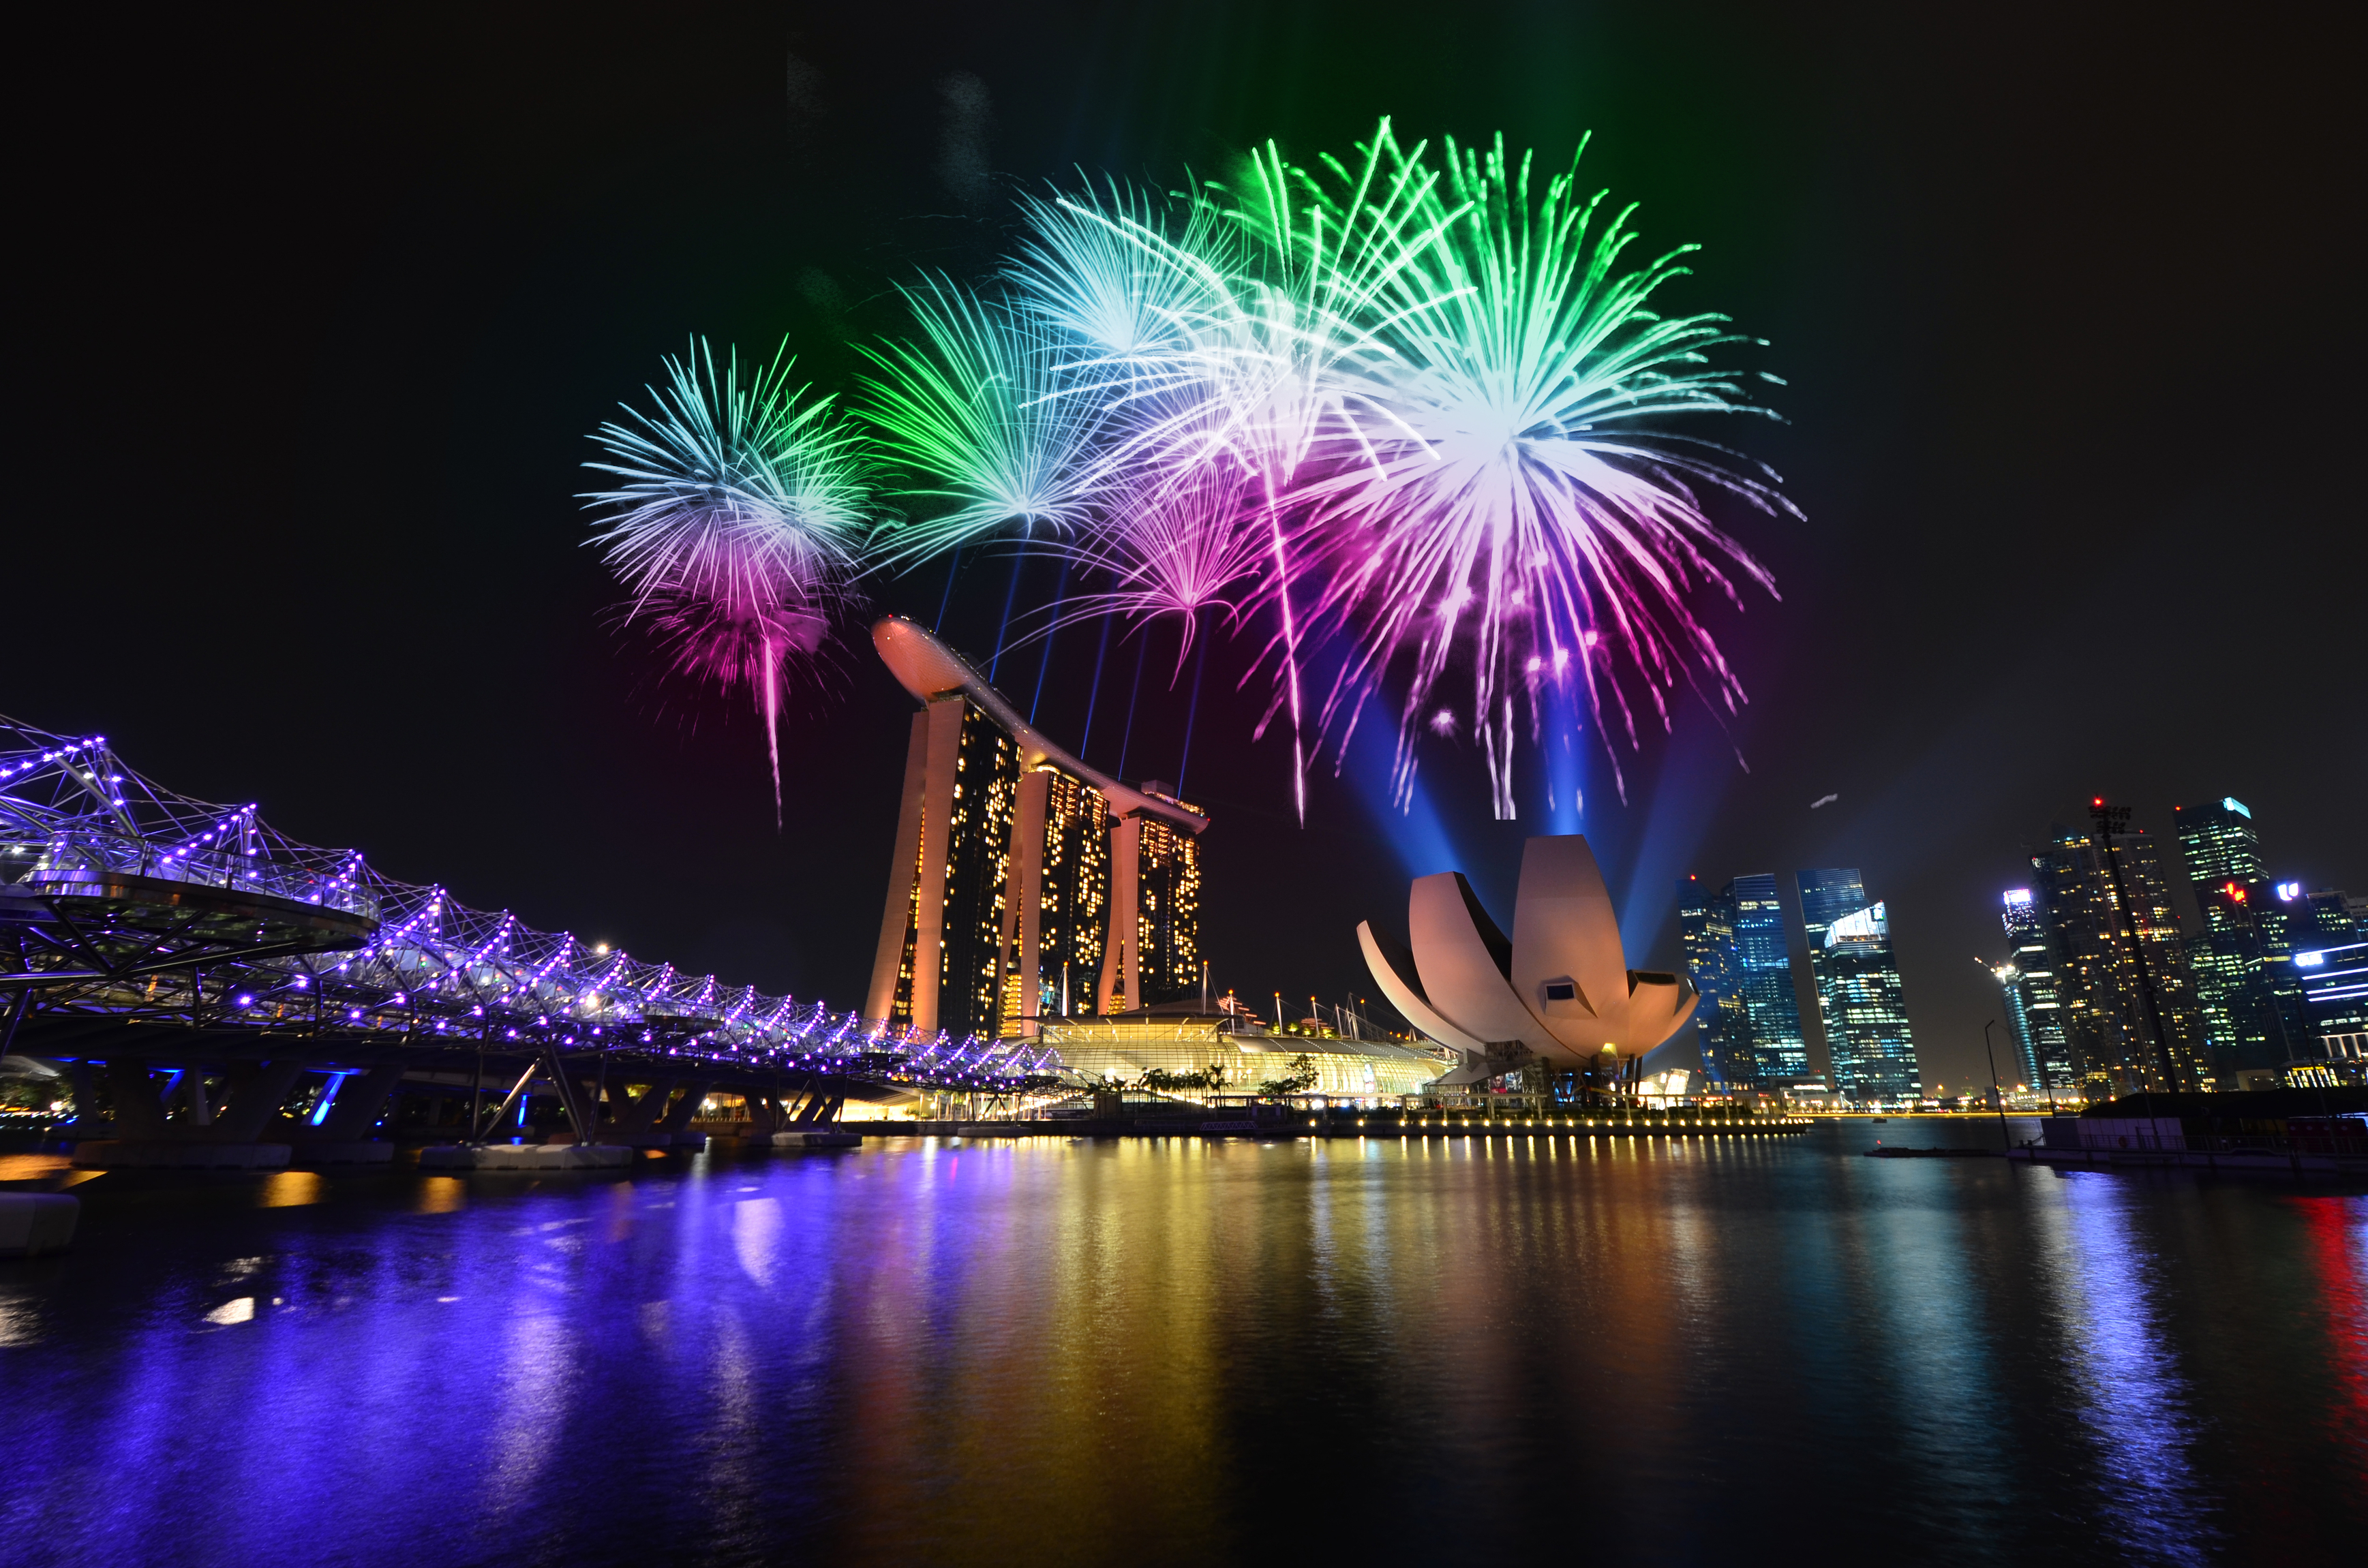 Fireworks over Marina Bay Sands, Hong Kong vs Singapore